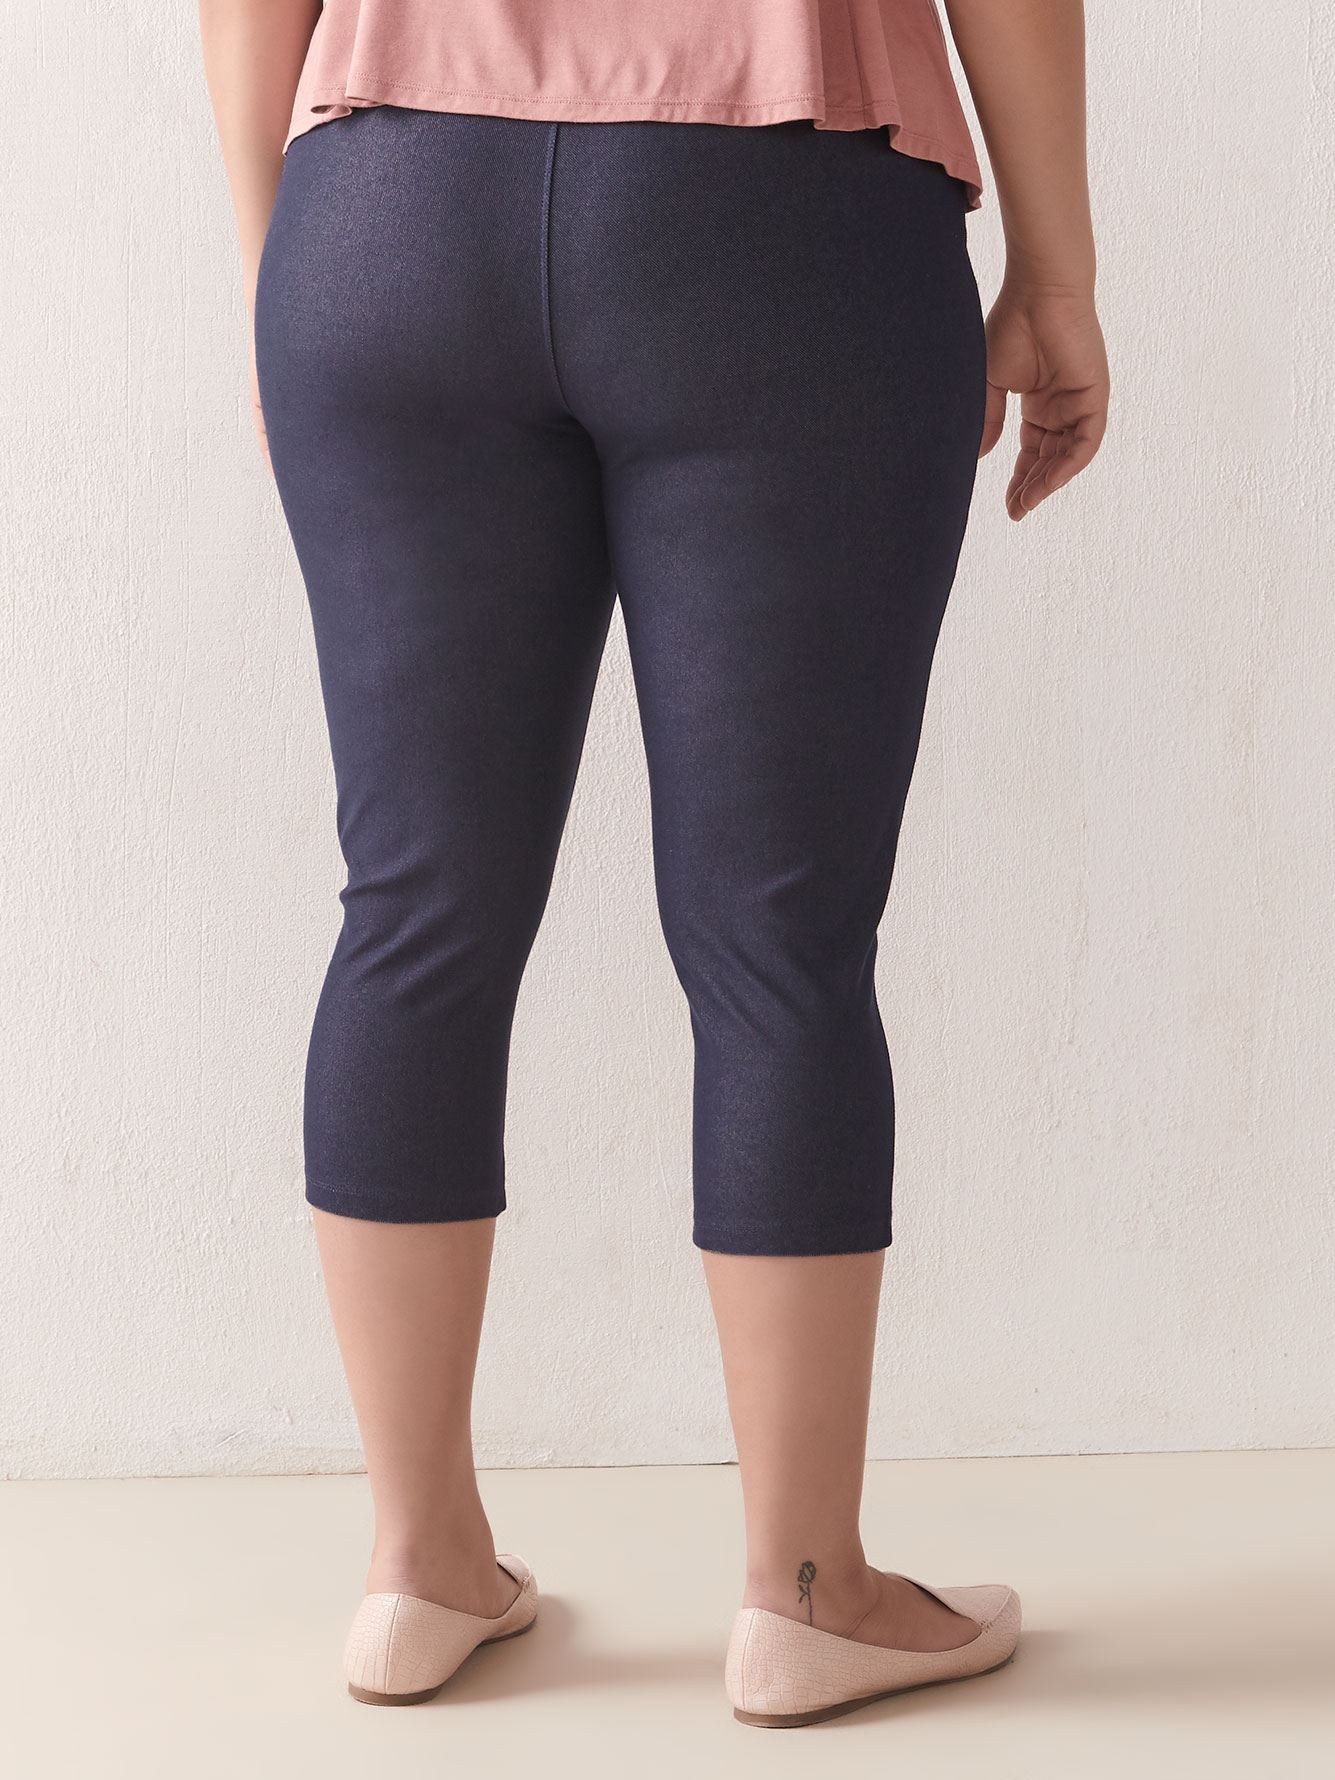 Solid Denim Capri Legging - Addition Elle